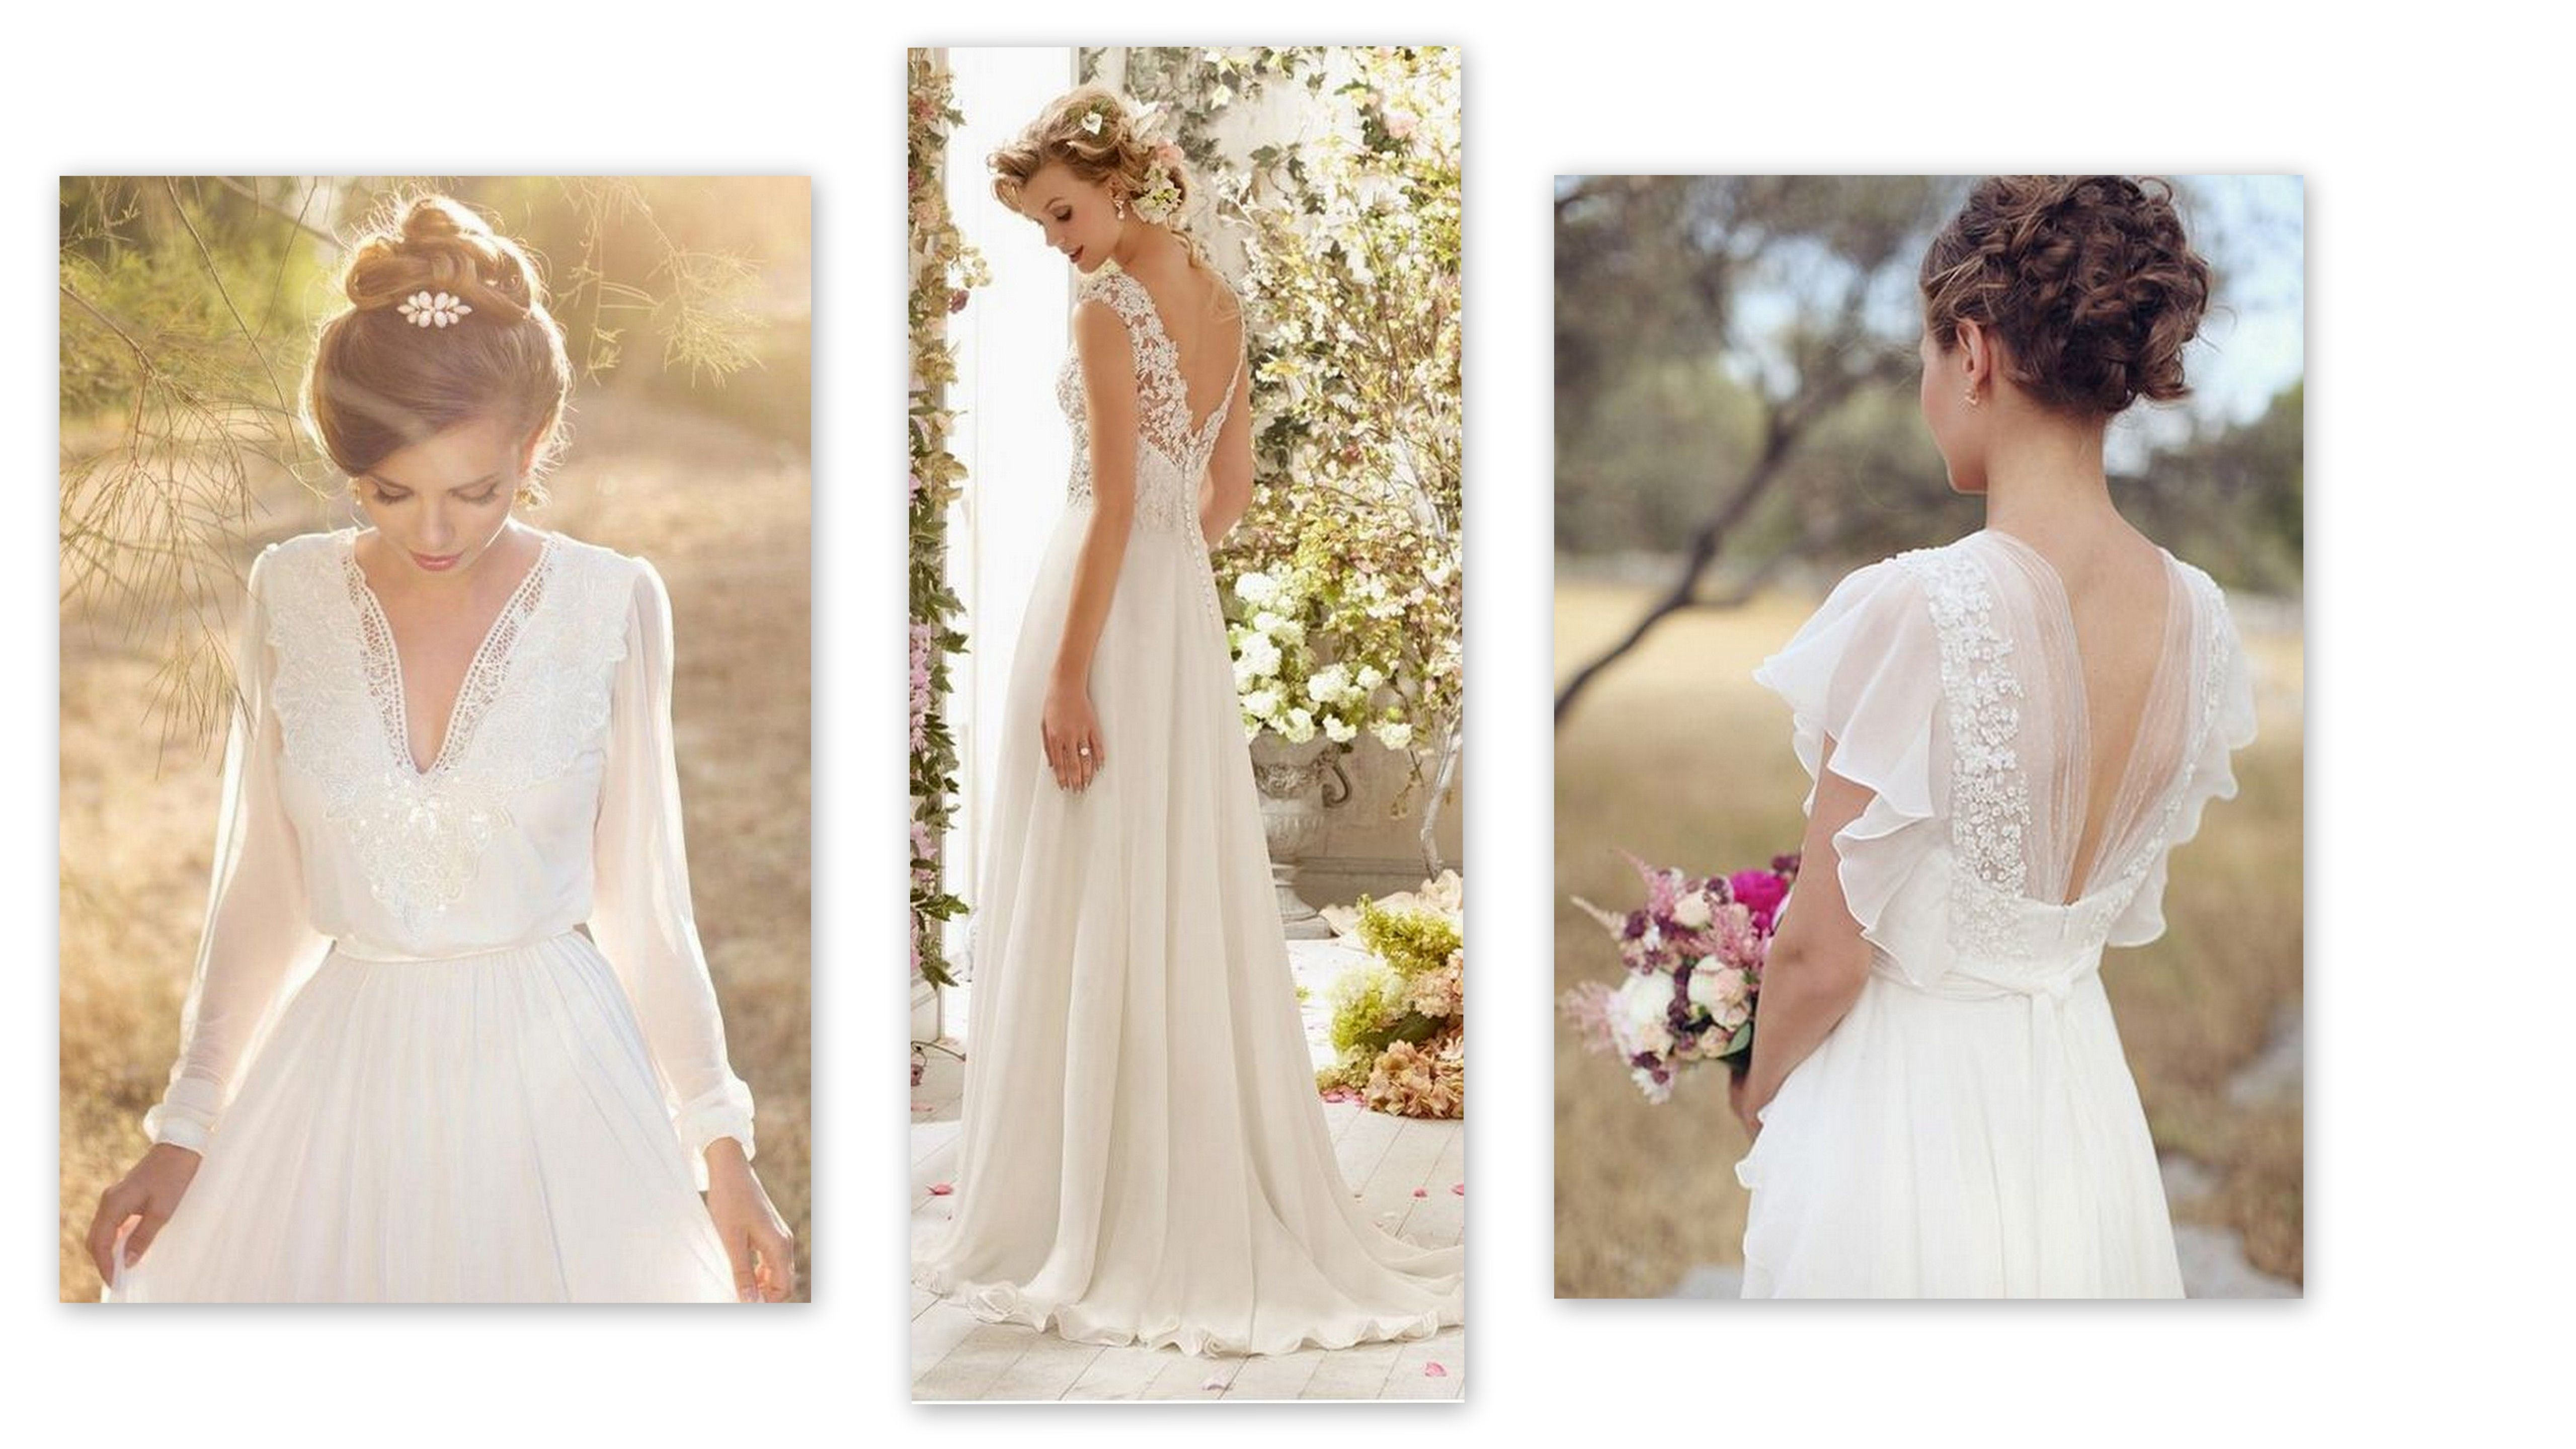 Top Tips Find Ideal Wedding Dress Body Type Gowns Fabulous Suited Frame